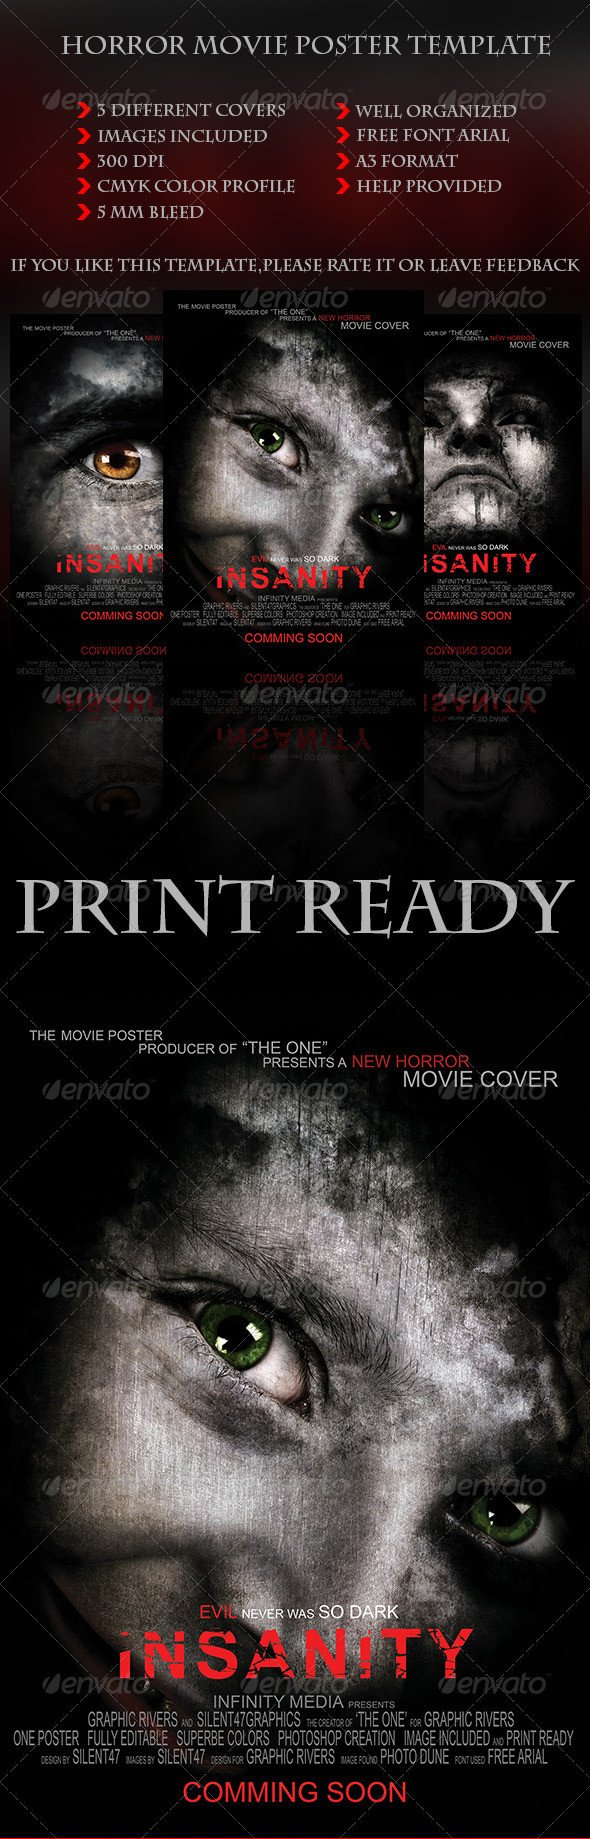 Movie Poster Template Psd Horror Movie Poster Template by Silentgraphics